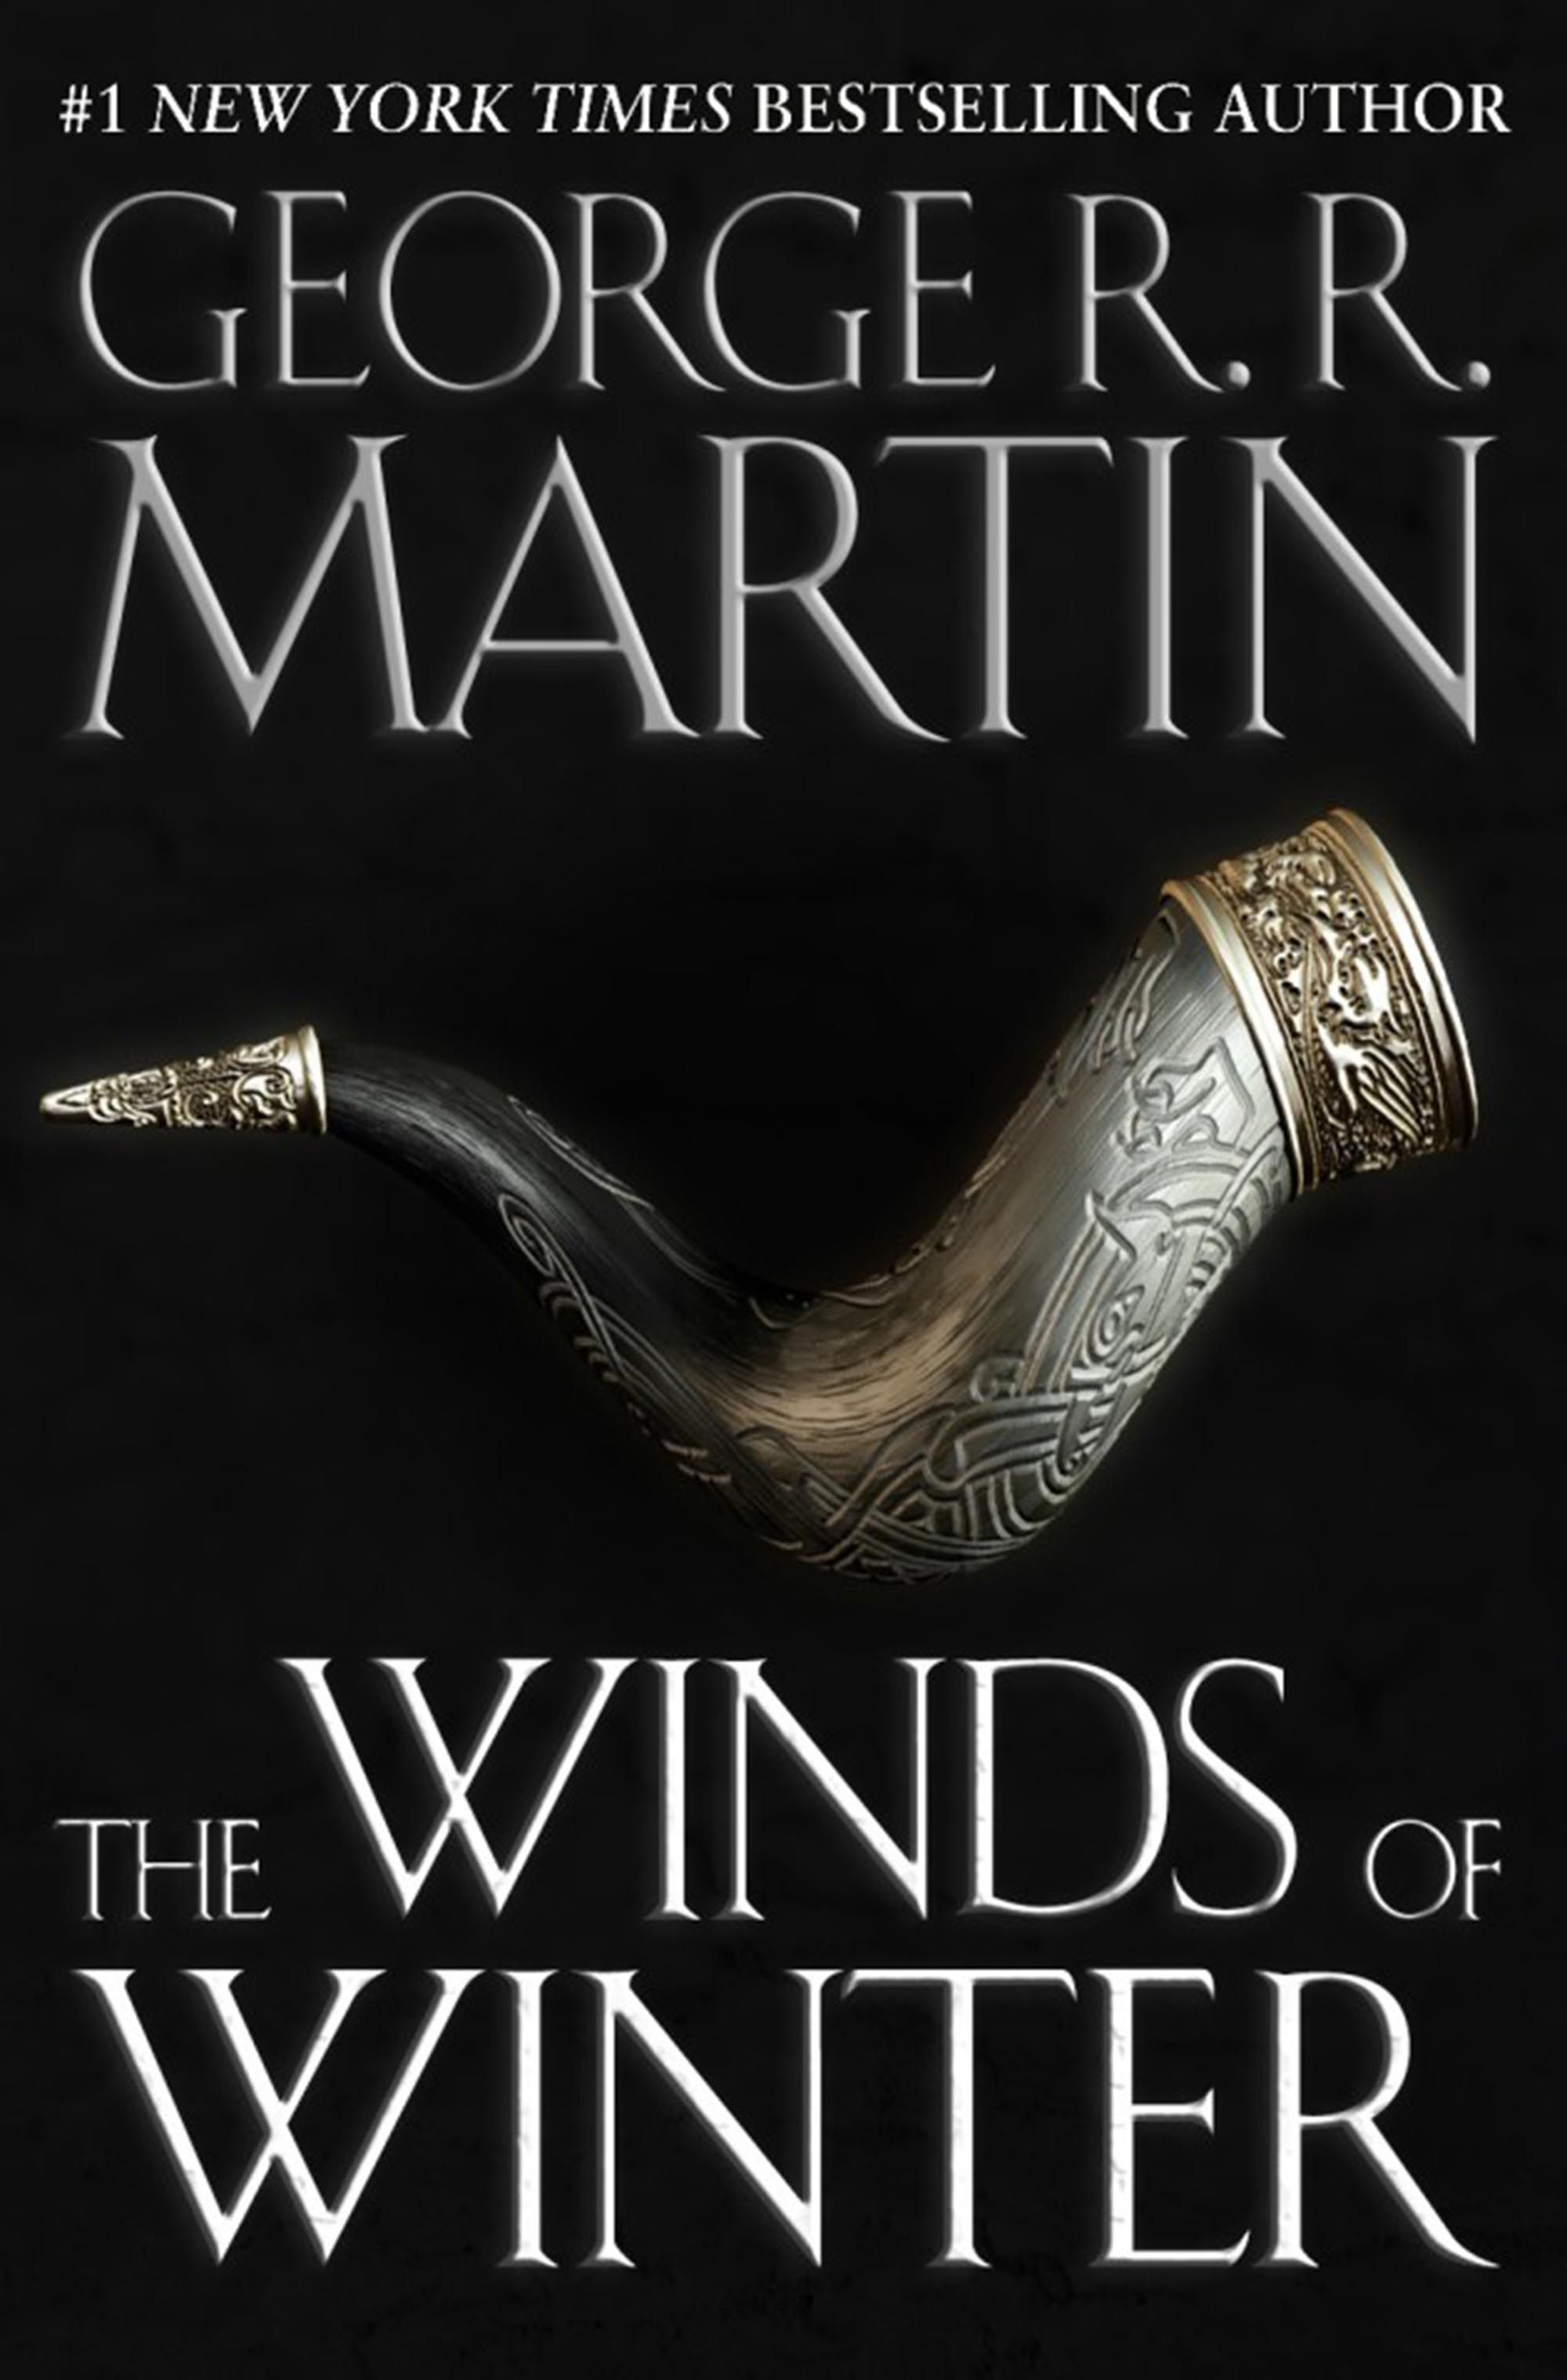 the winds of winter book 6 release date